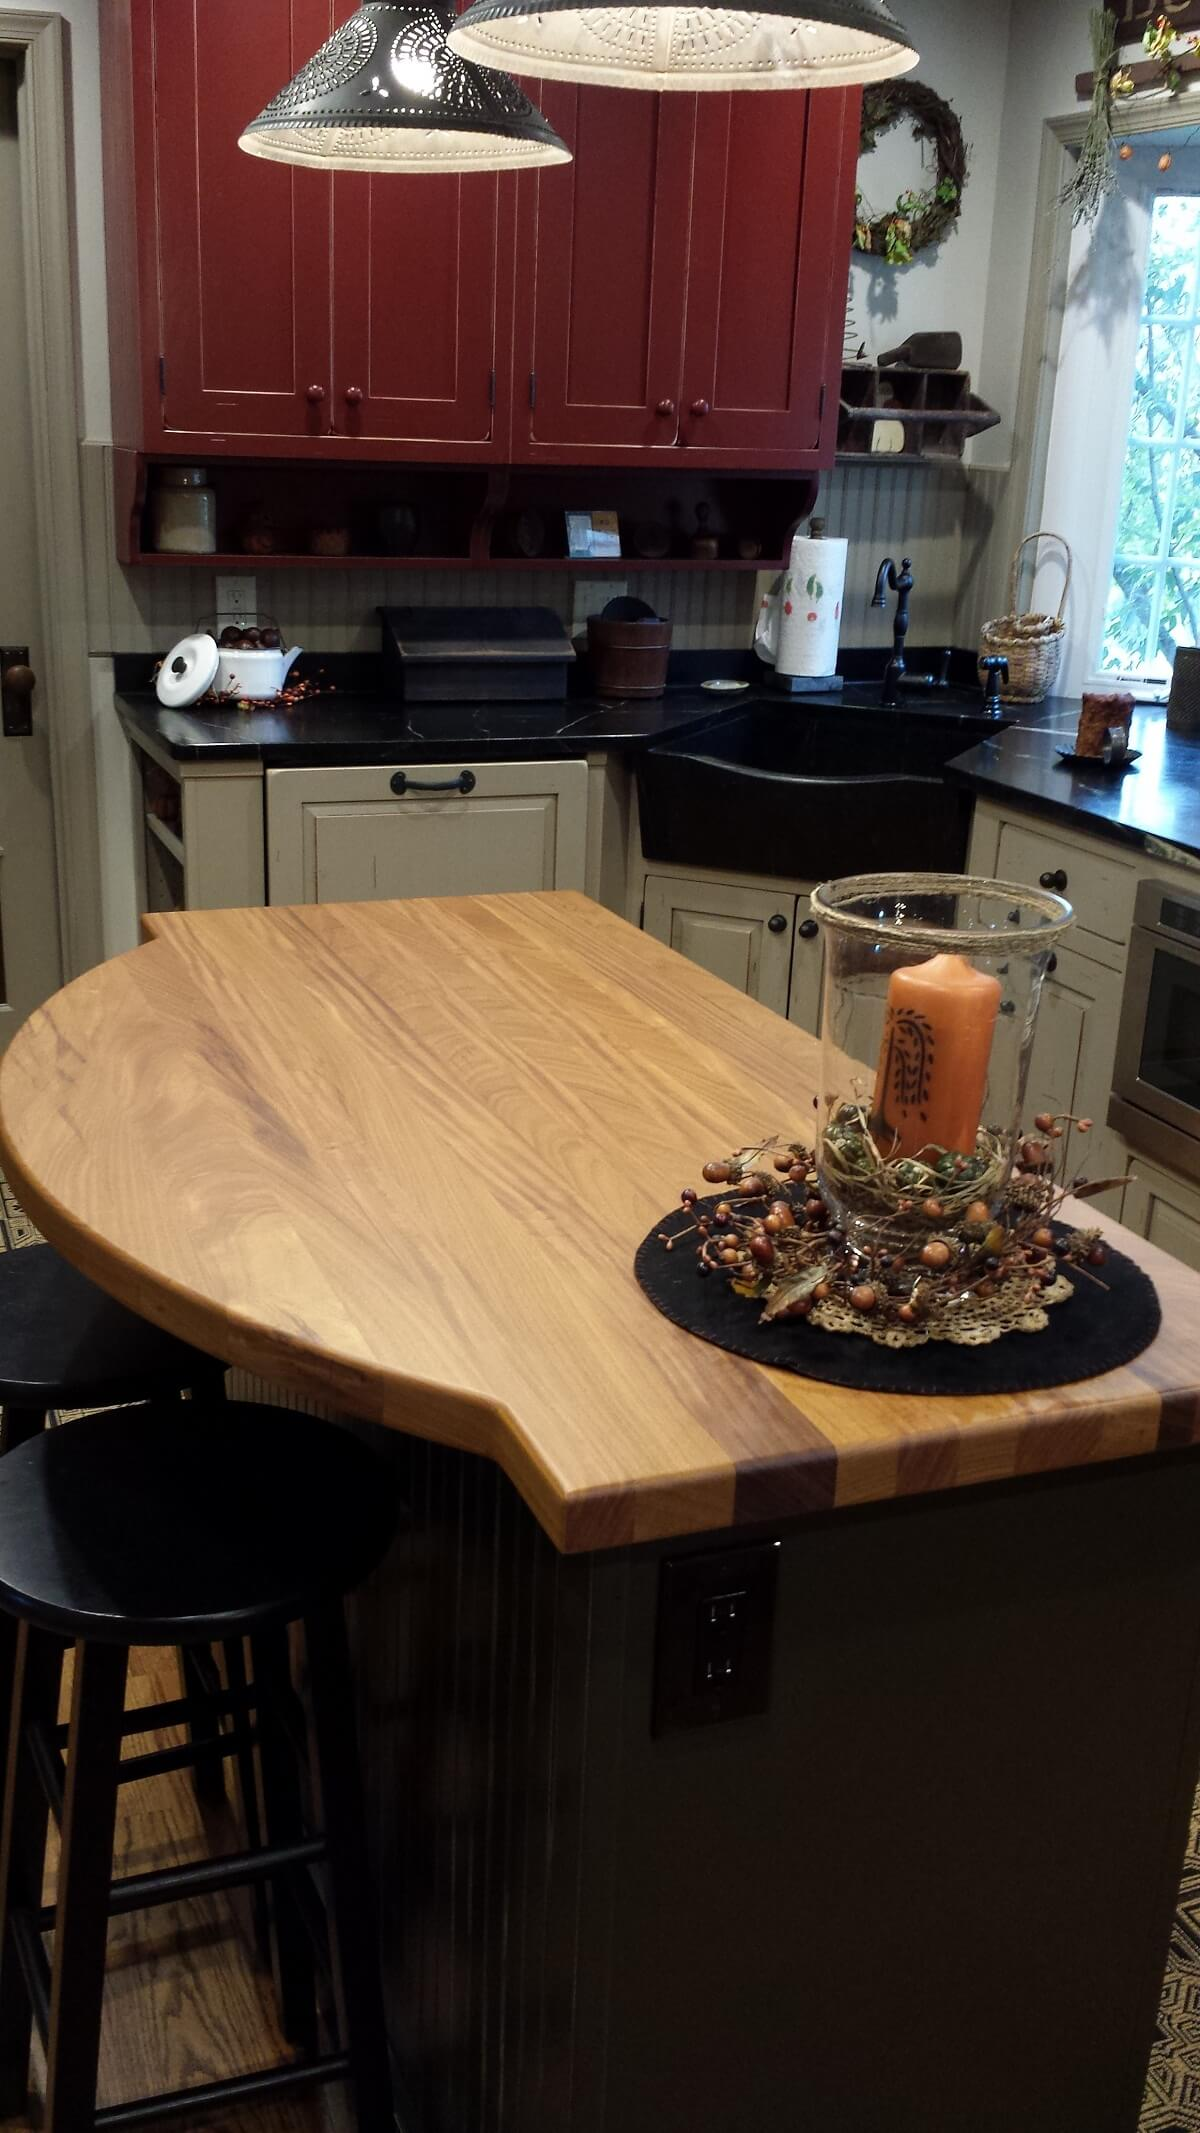 Kitchen island with natural wood counter